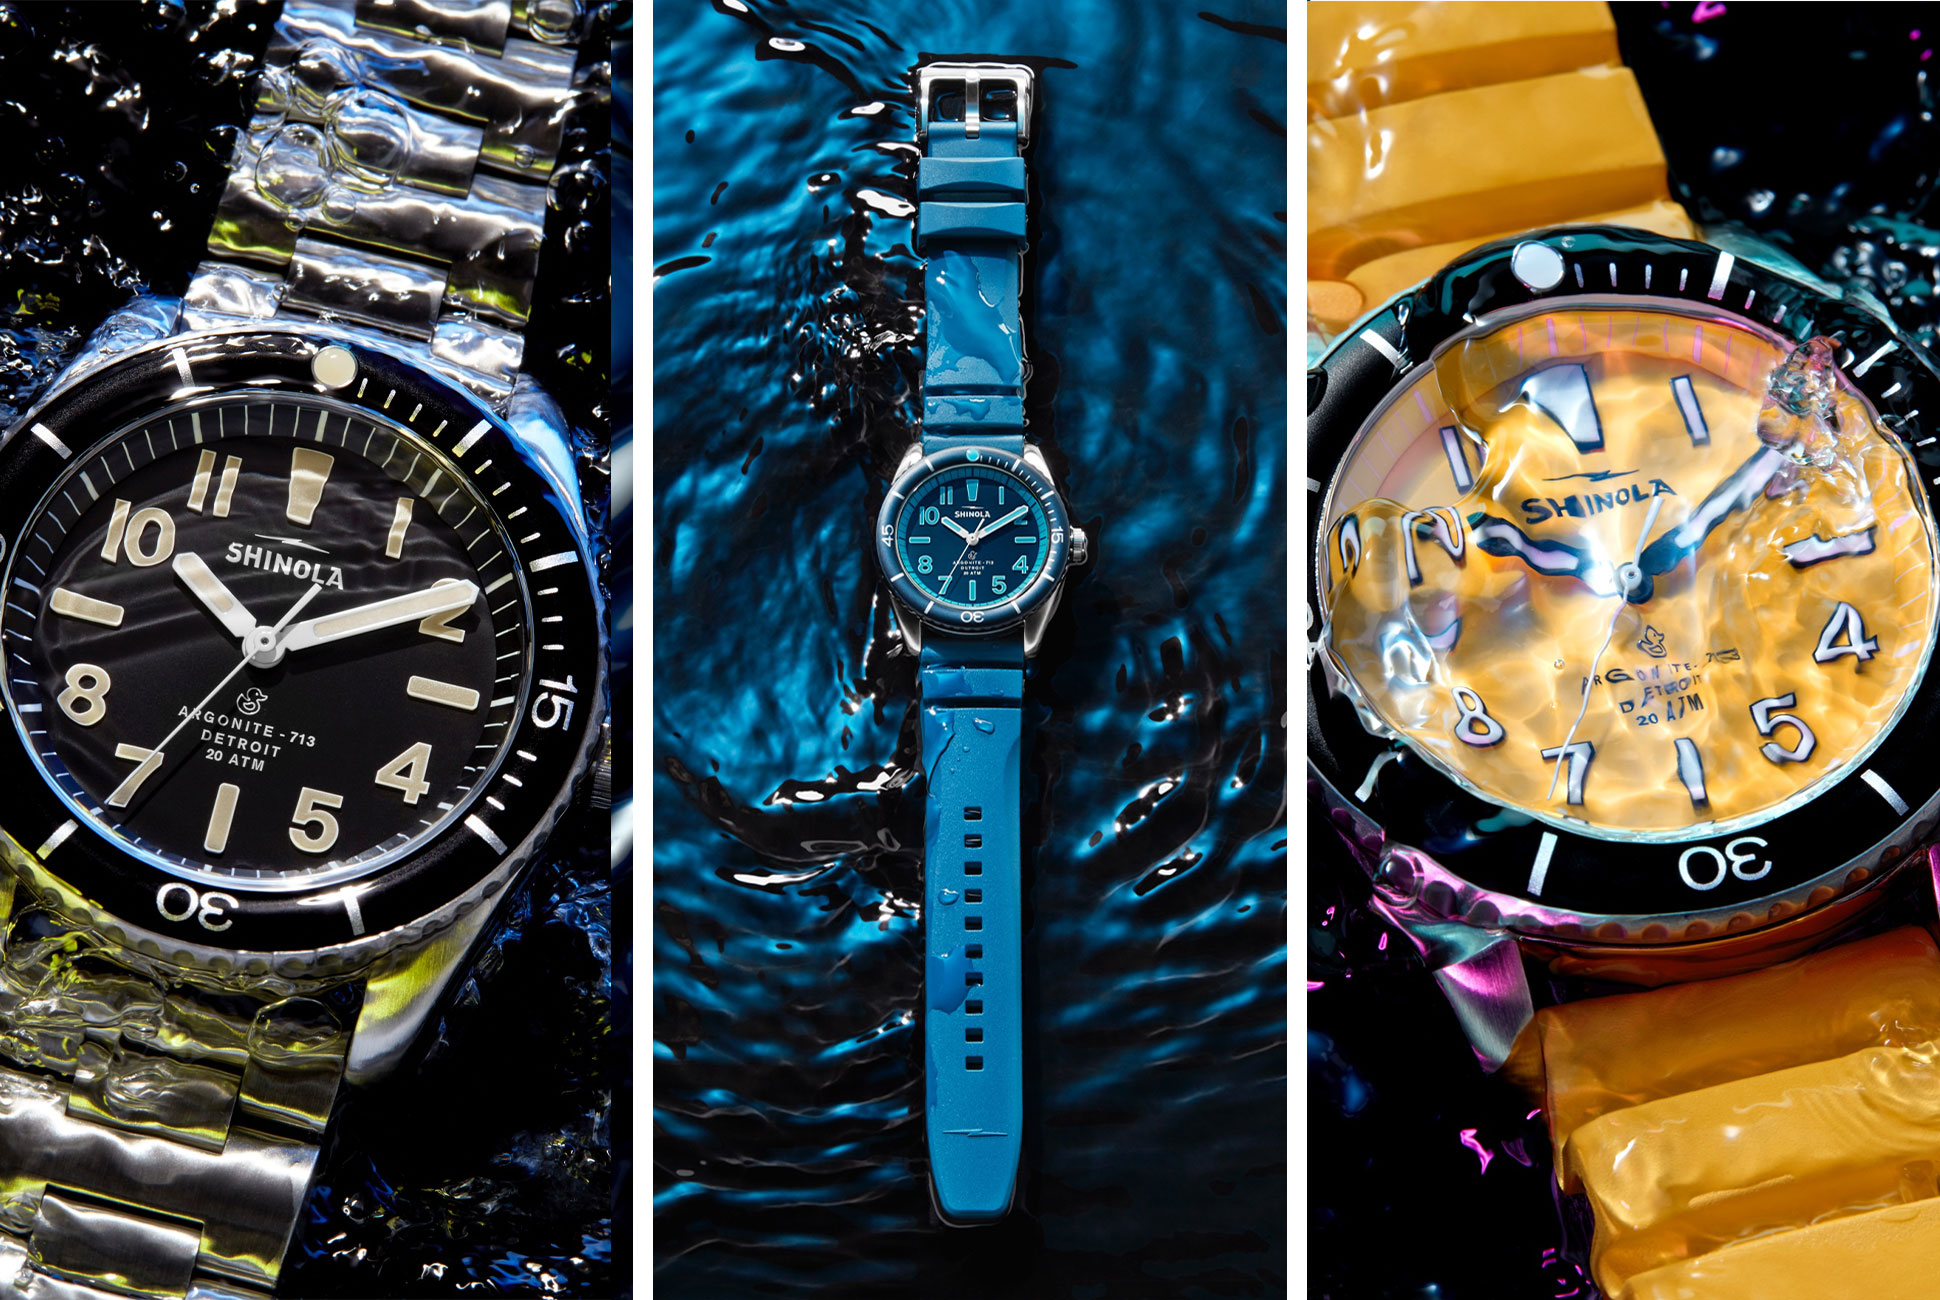 This Watch Is Made for Surfing in Detroit, of All Places